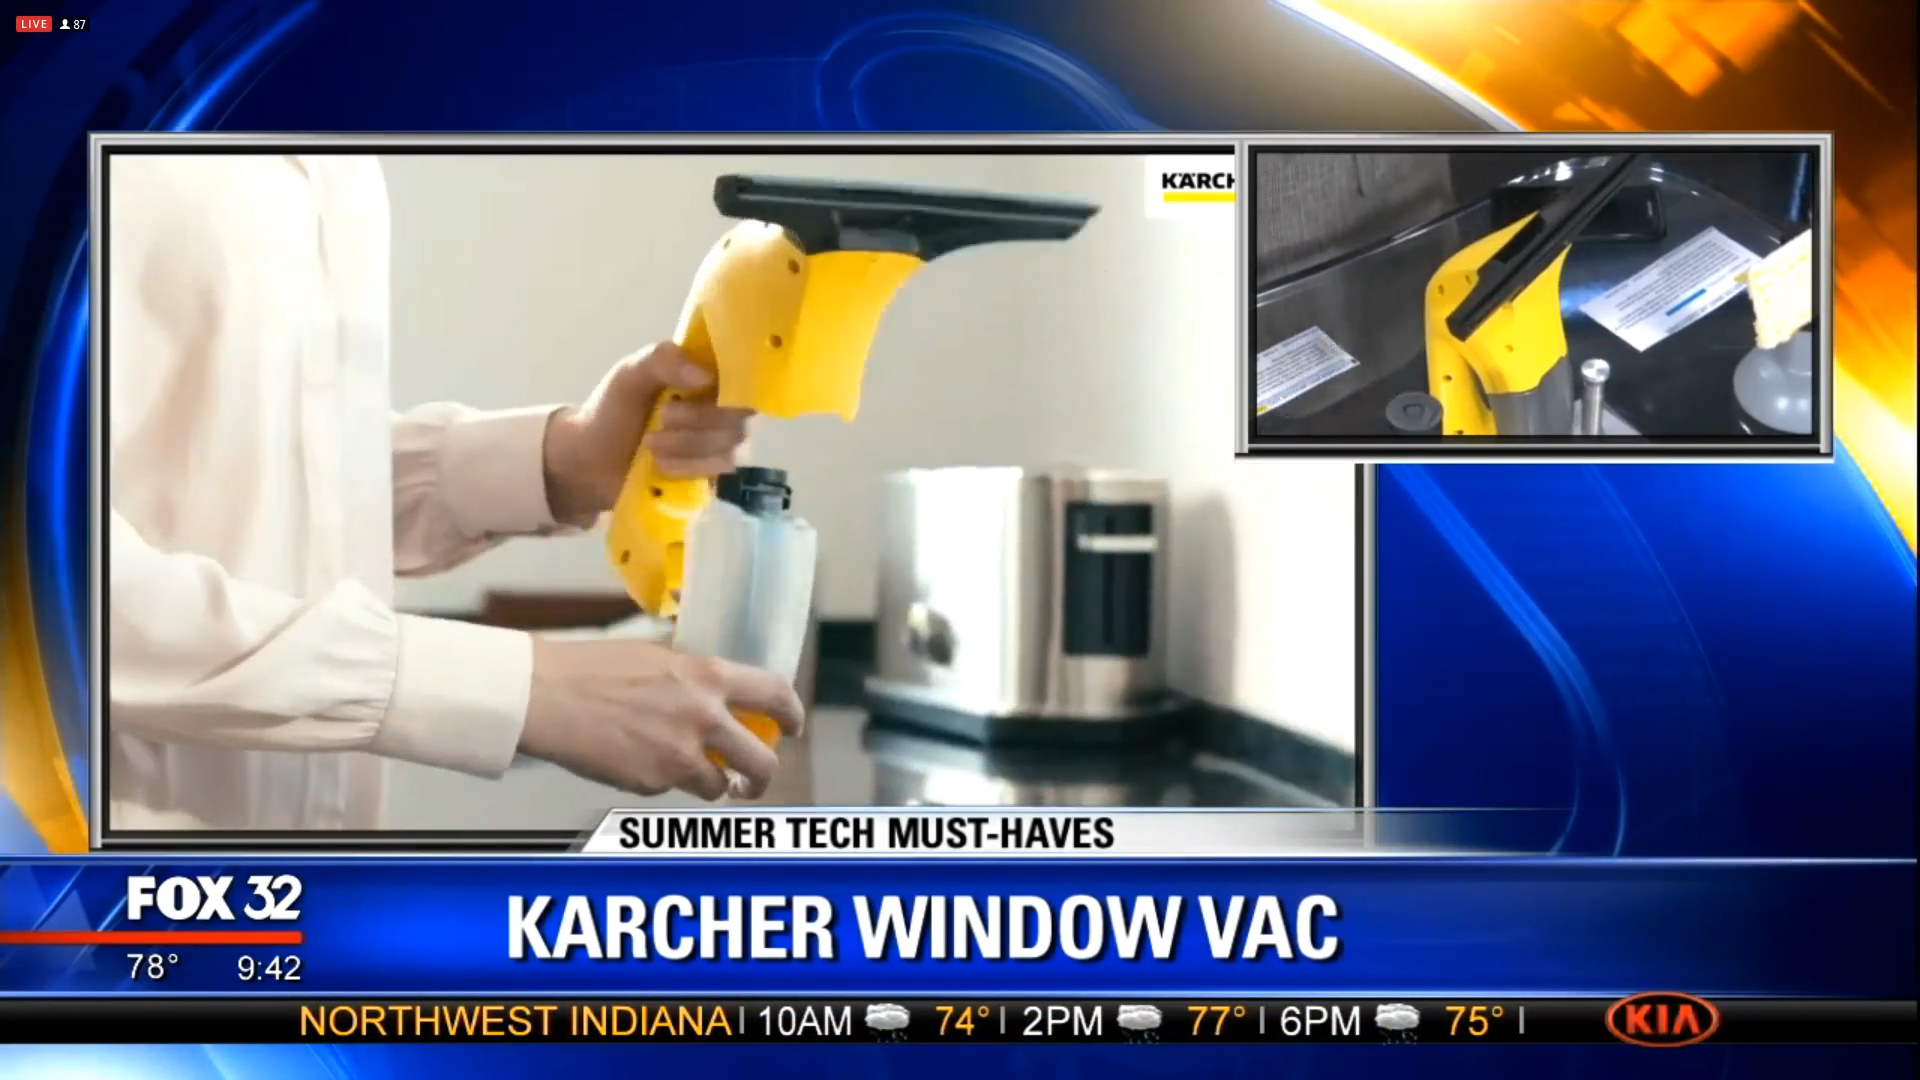 KARCHER WV1 WINDOW VAC - $79.99Shop Now